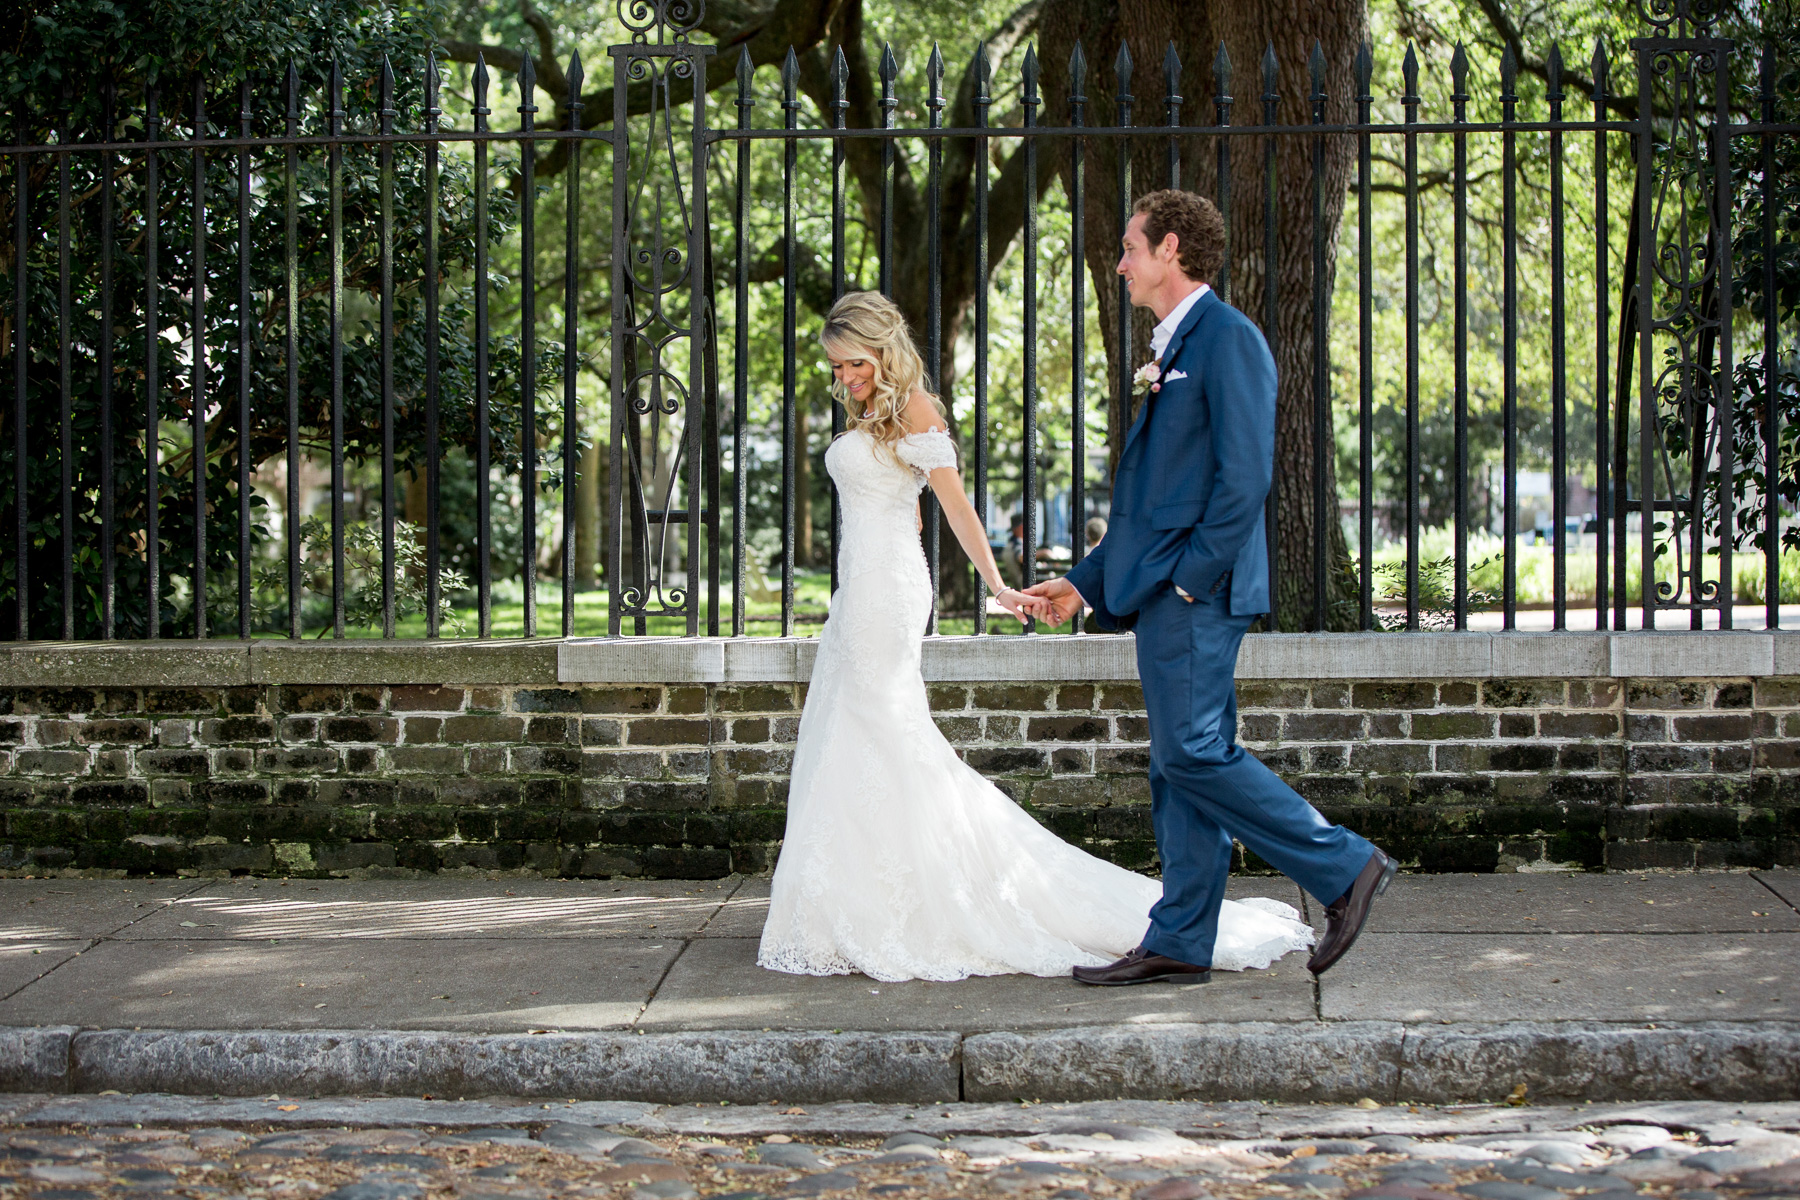 Charleston-best-wedding-photographer-SC-16.jpg